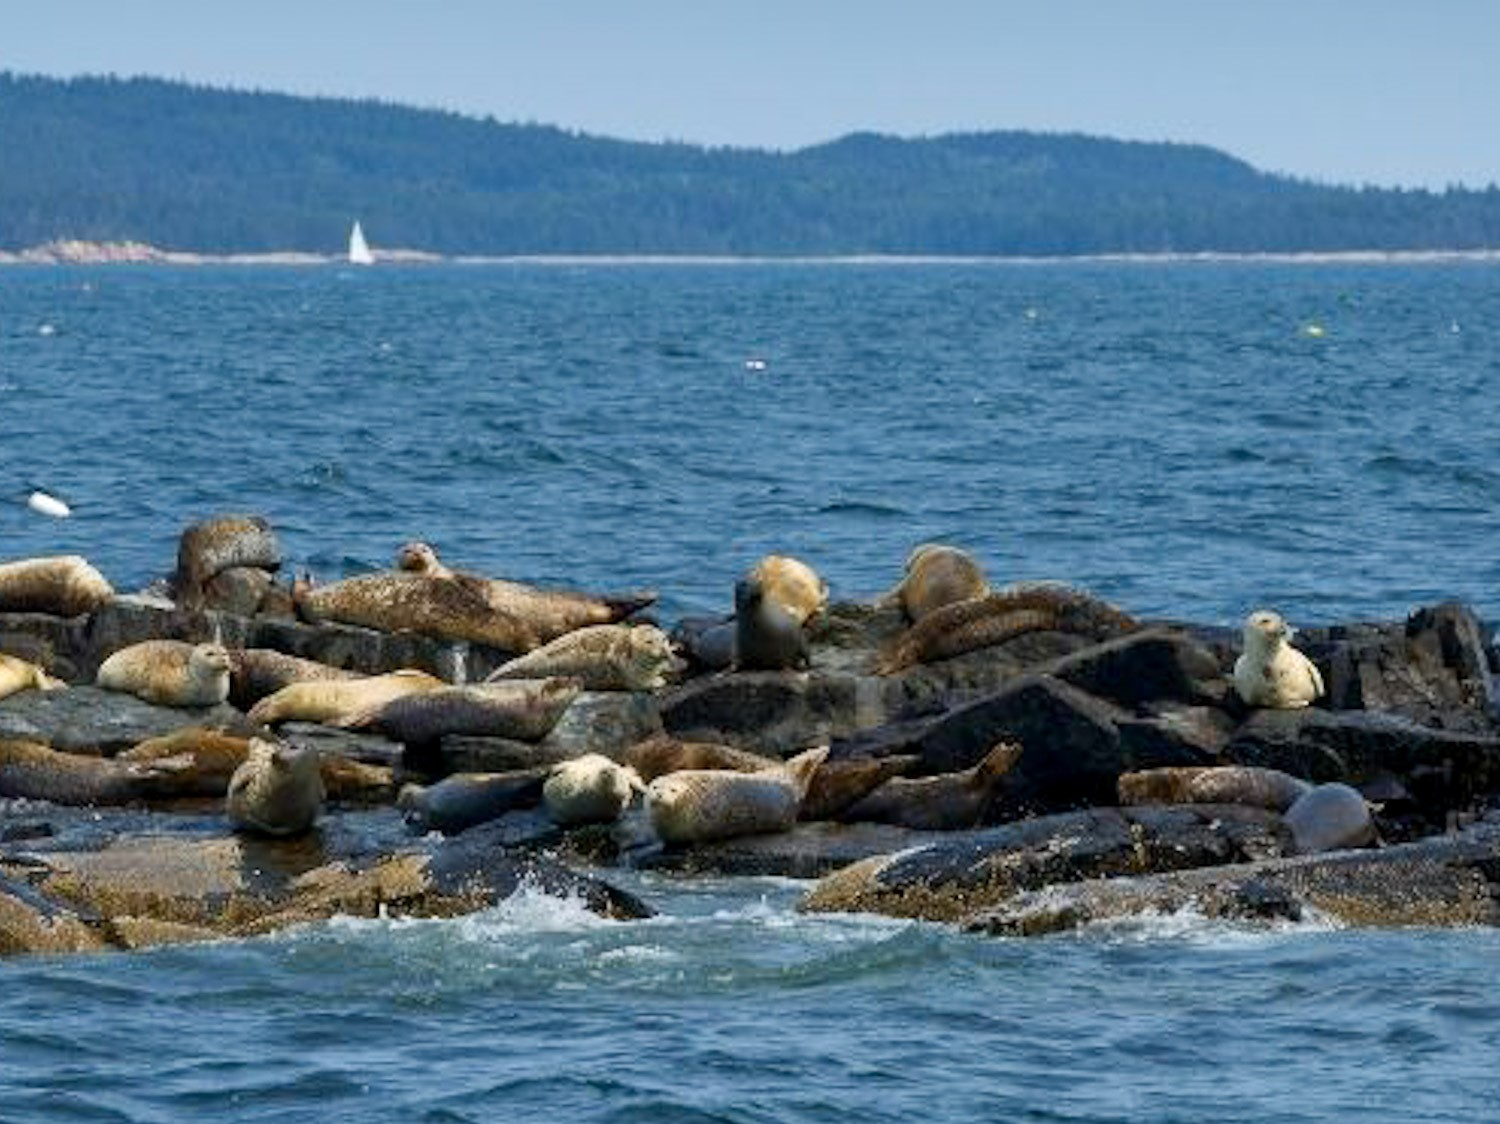 Seals viewed from sailing tours in Mahone Bay, Nova Scotia